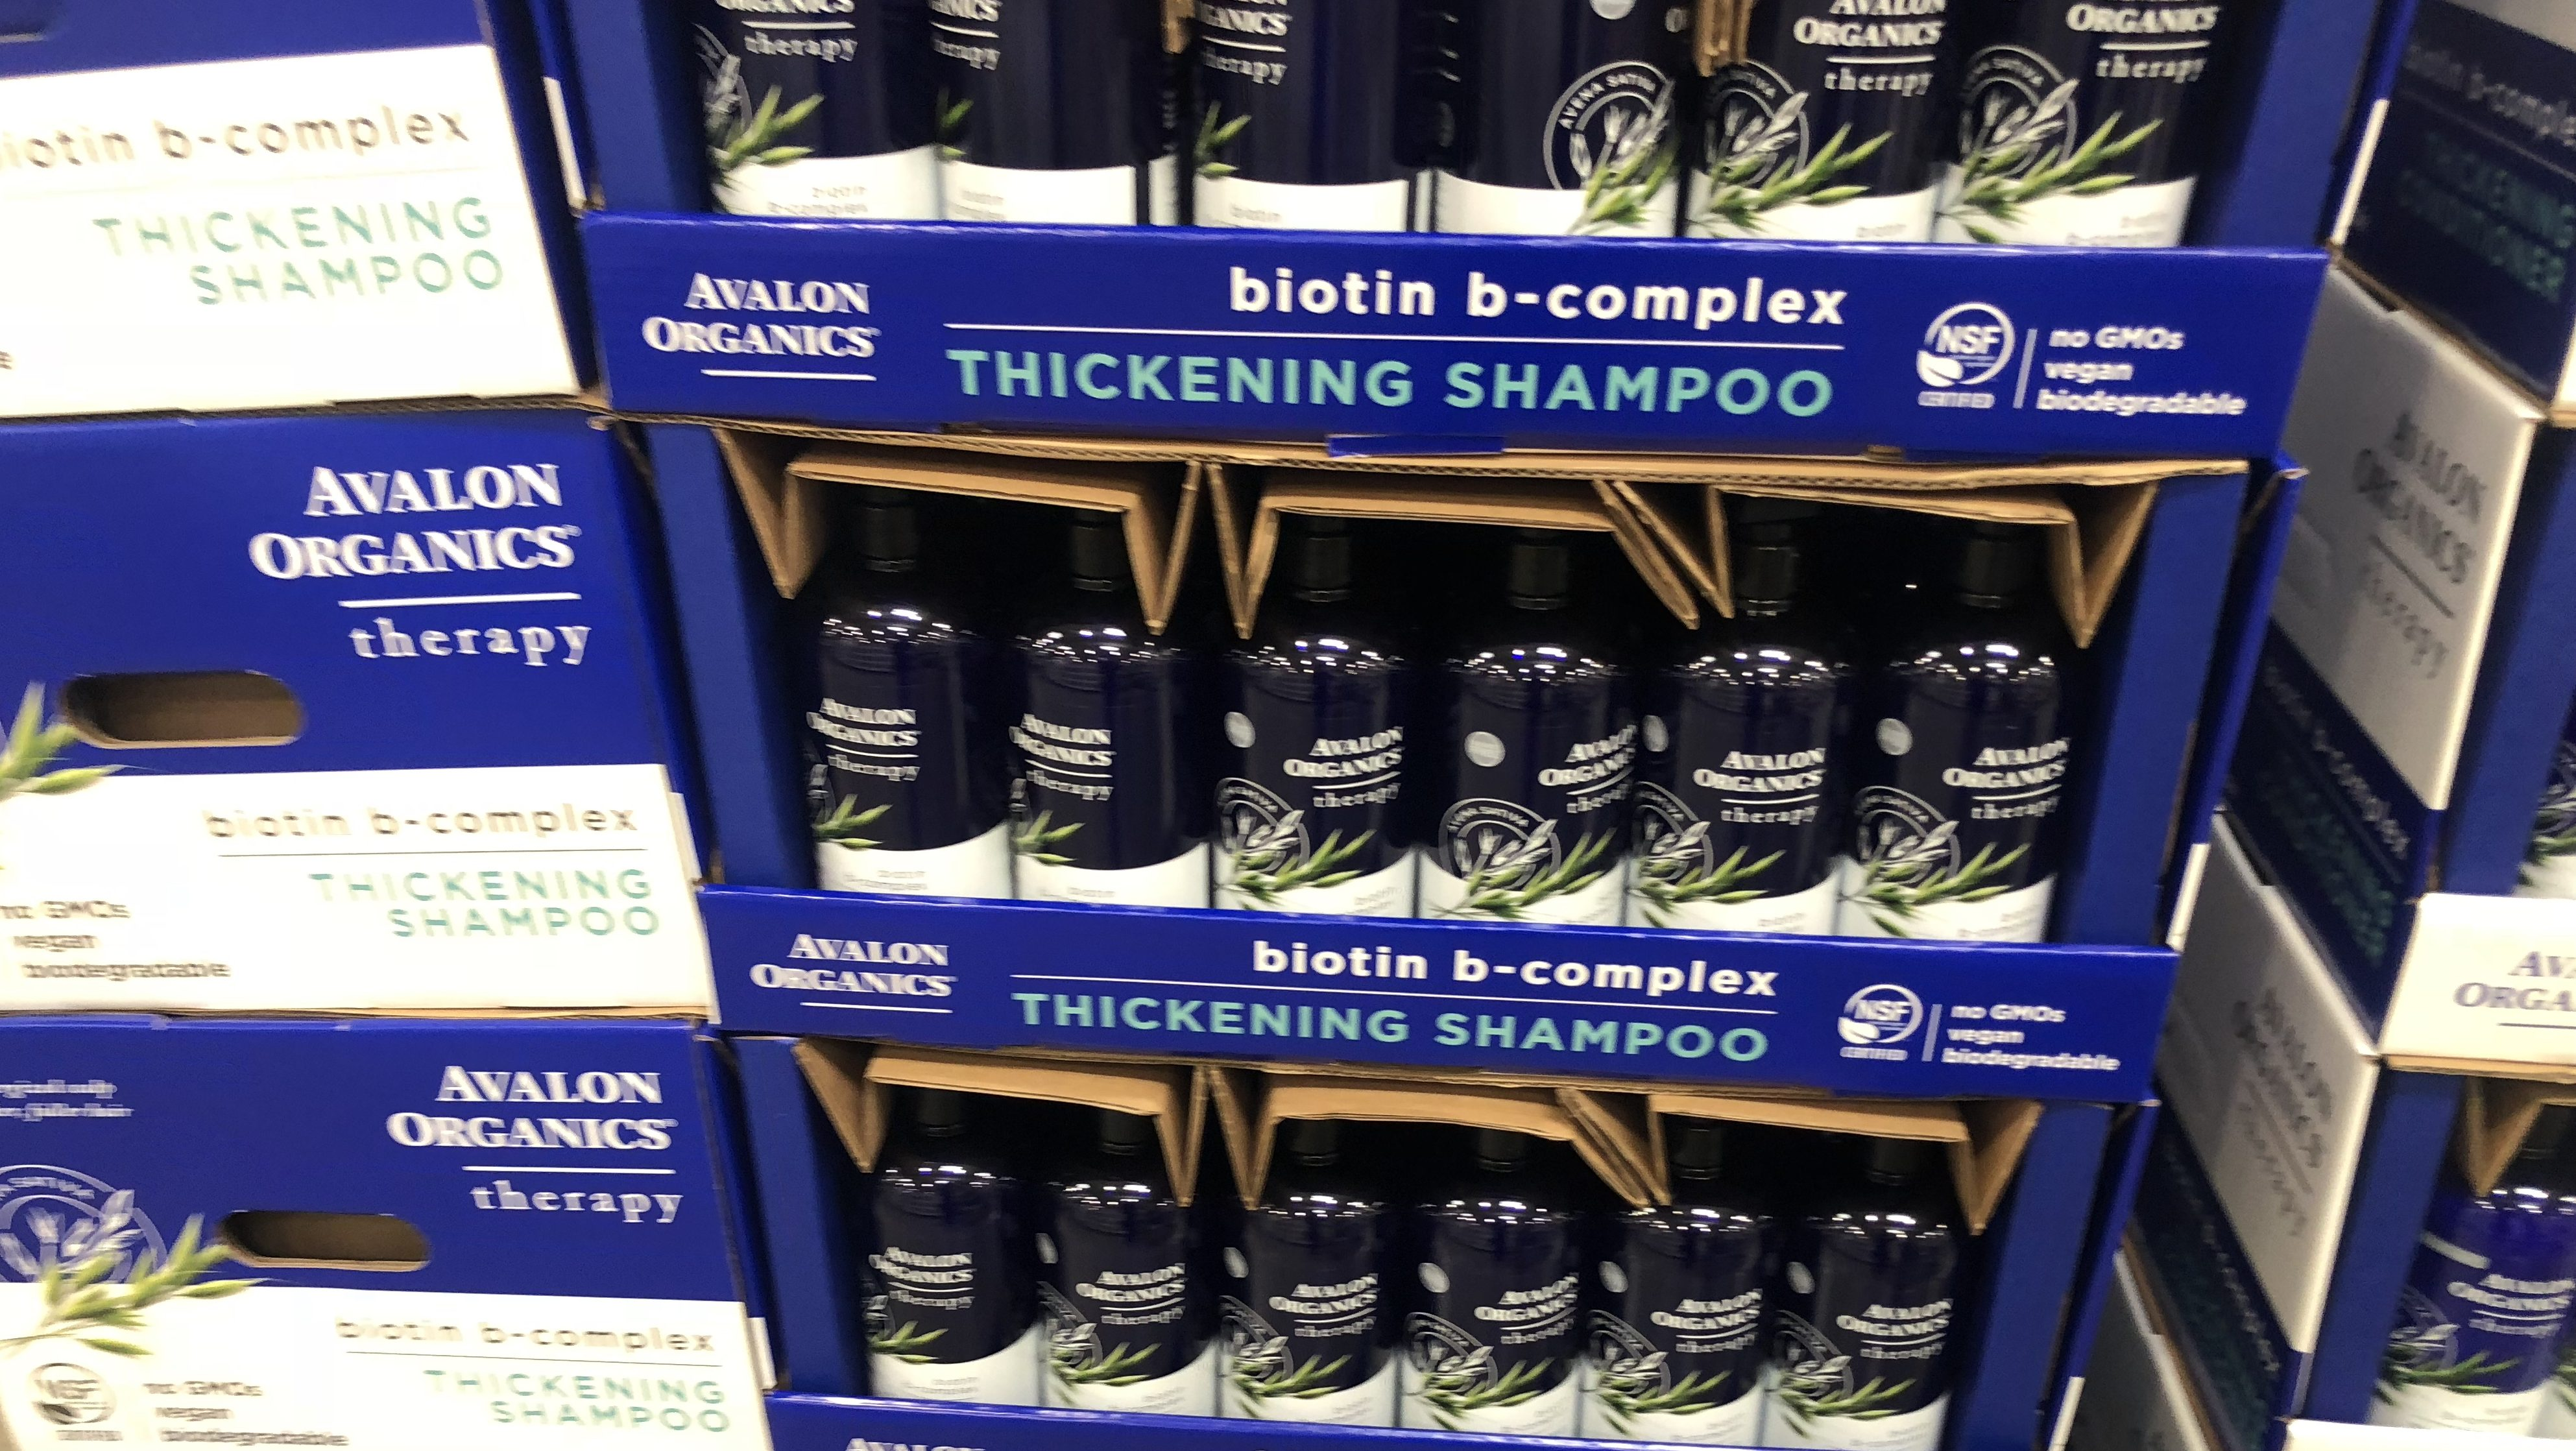 Costco Monthly Deals for September 2018 - Avalon Organics at Costco